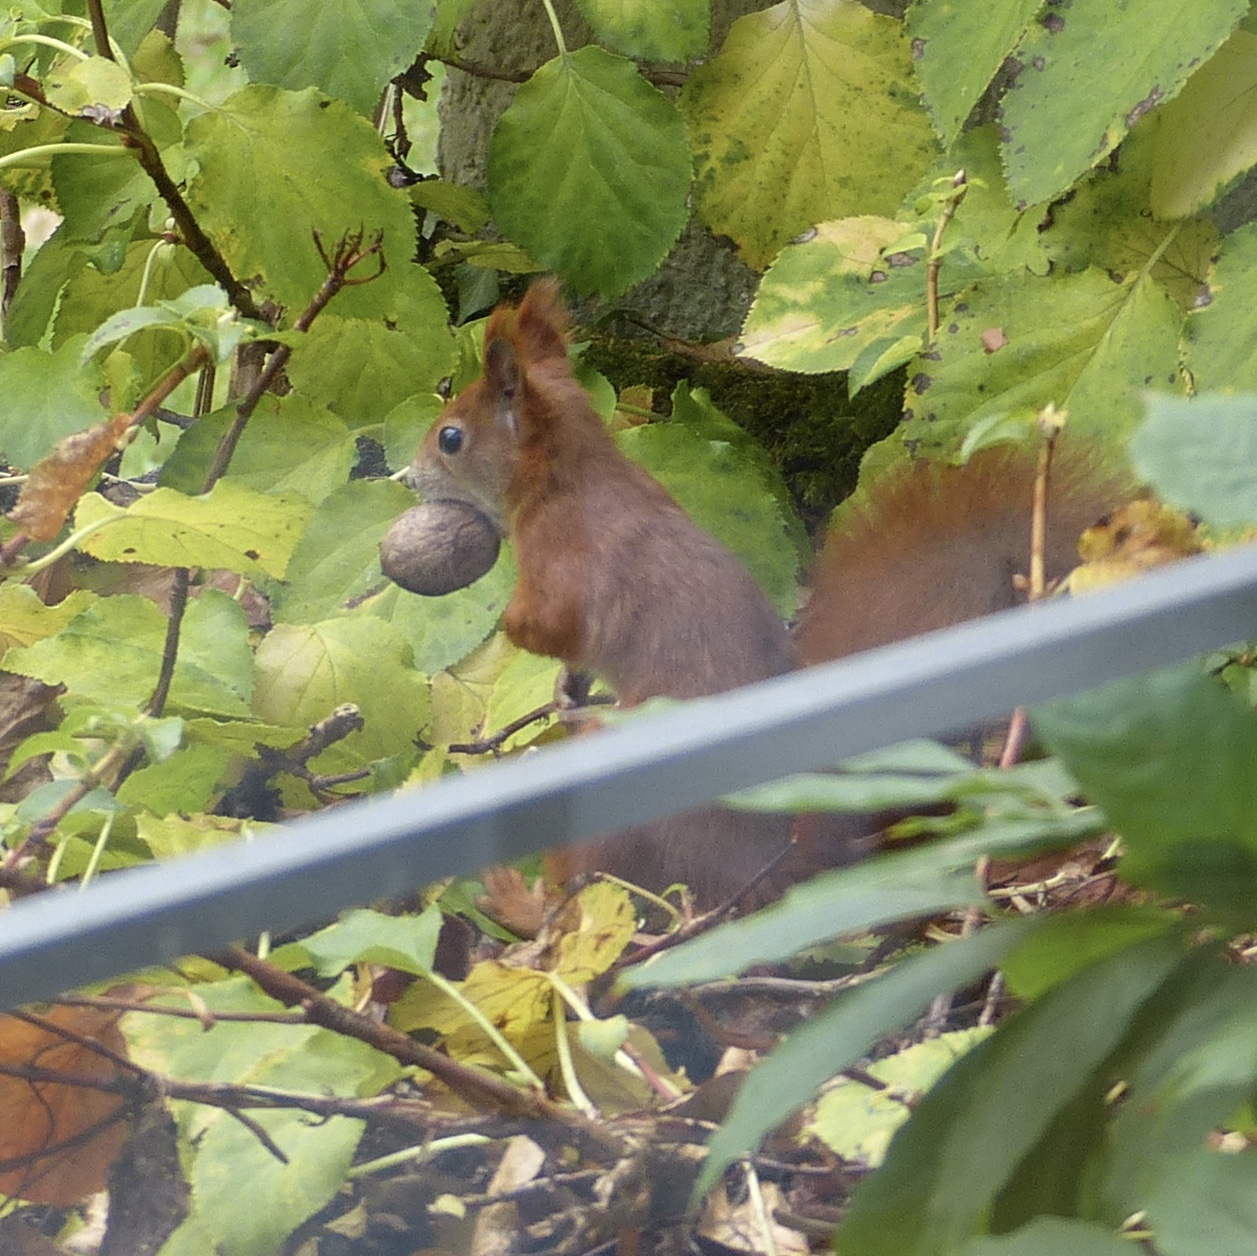 A Squirrel to watch at breakfast time